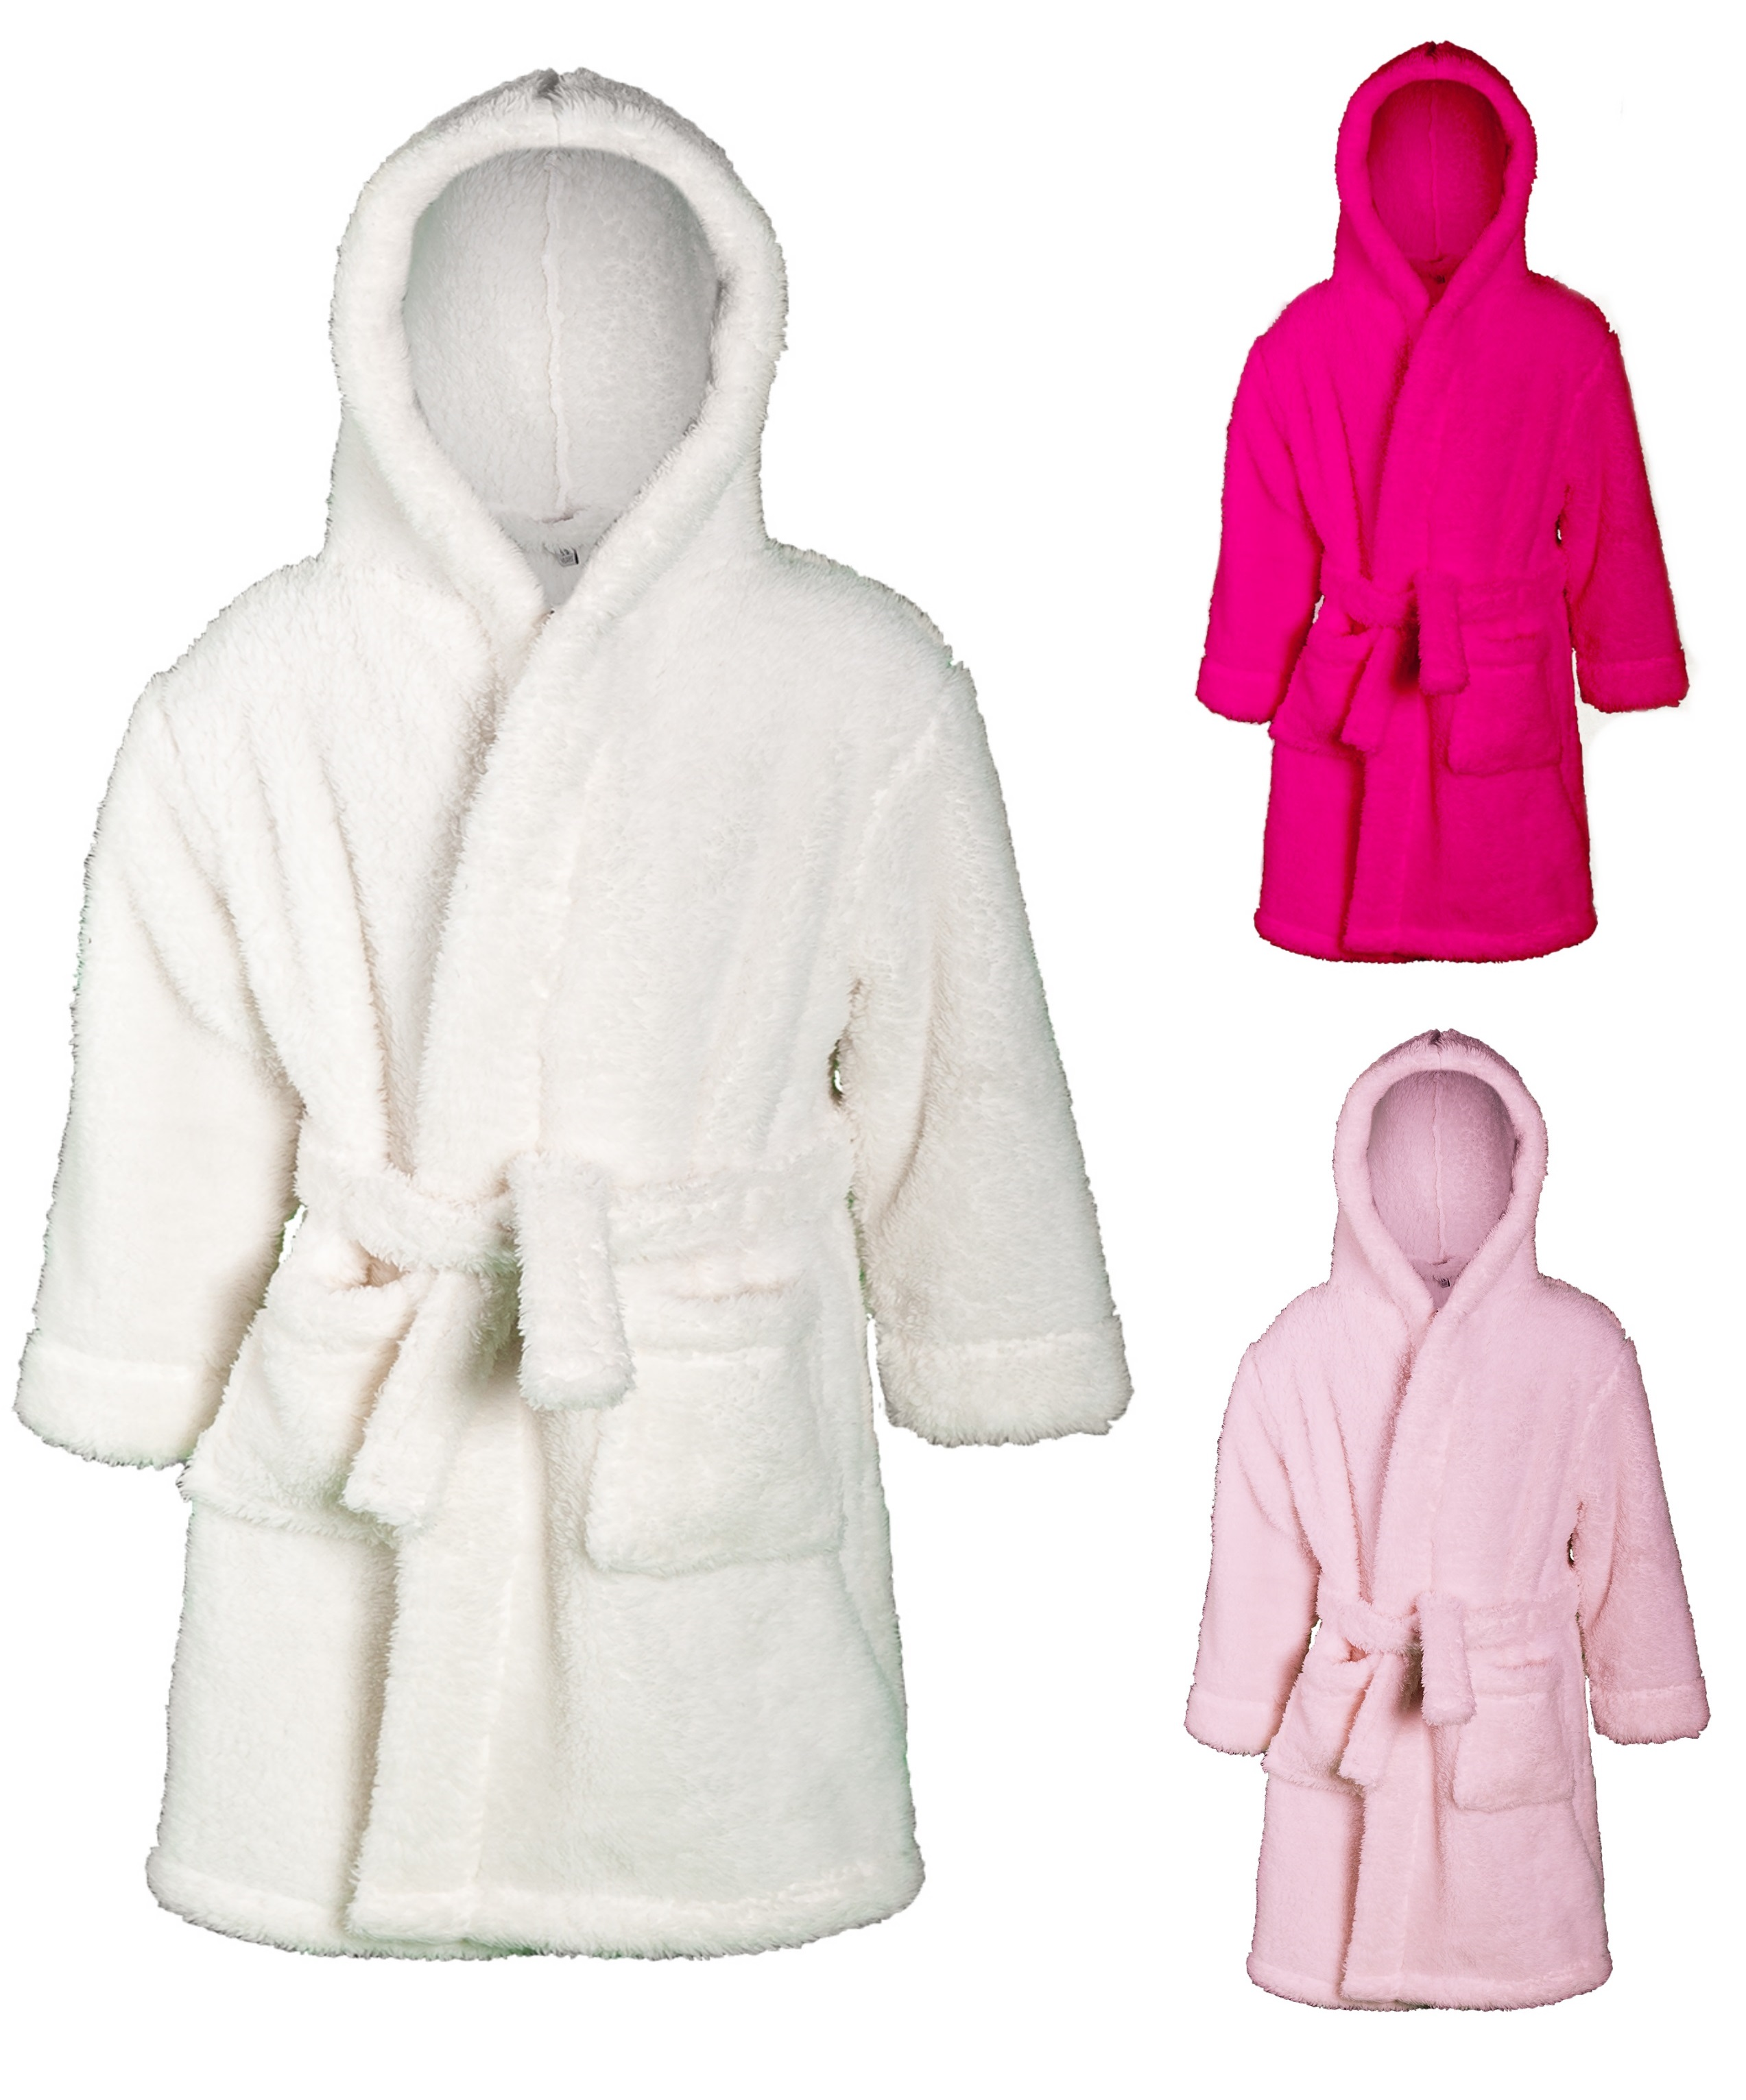 Girls Luxury Hooded Dressing Gown Supersoft Fleece Bath Robe ...